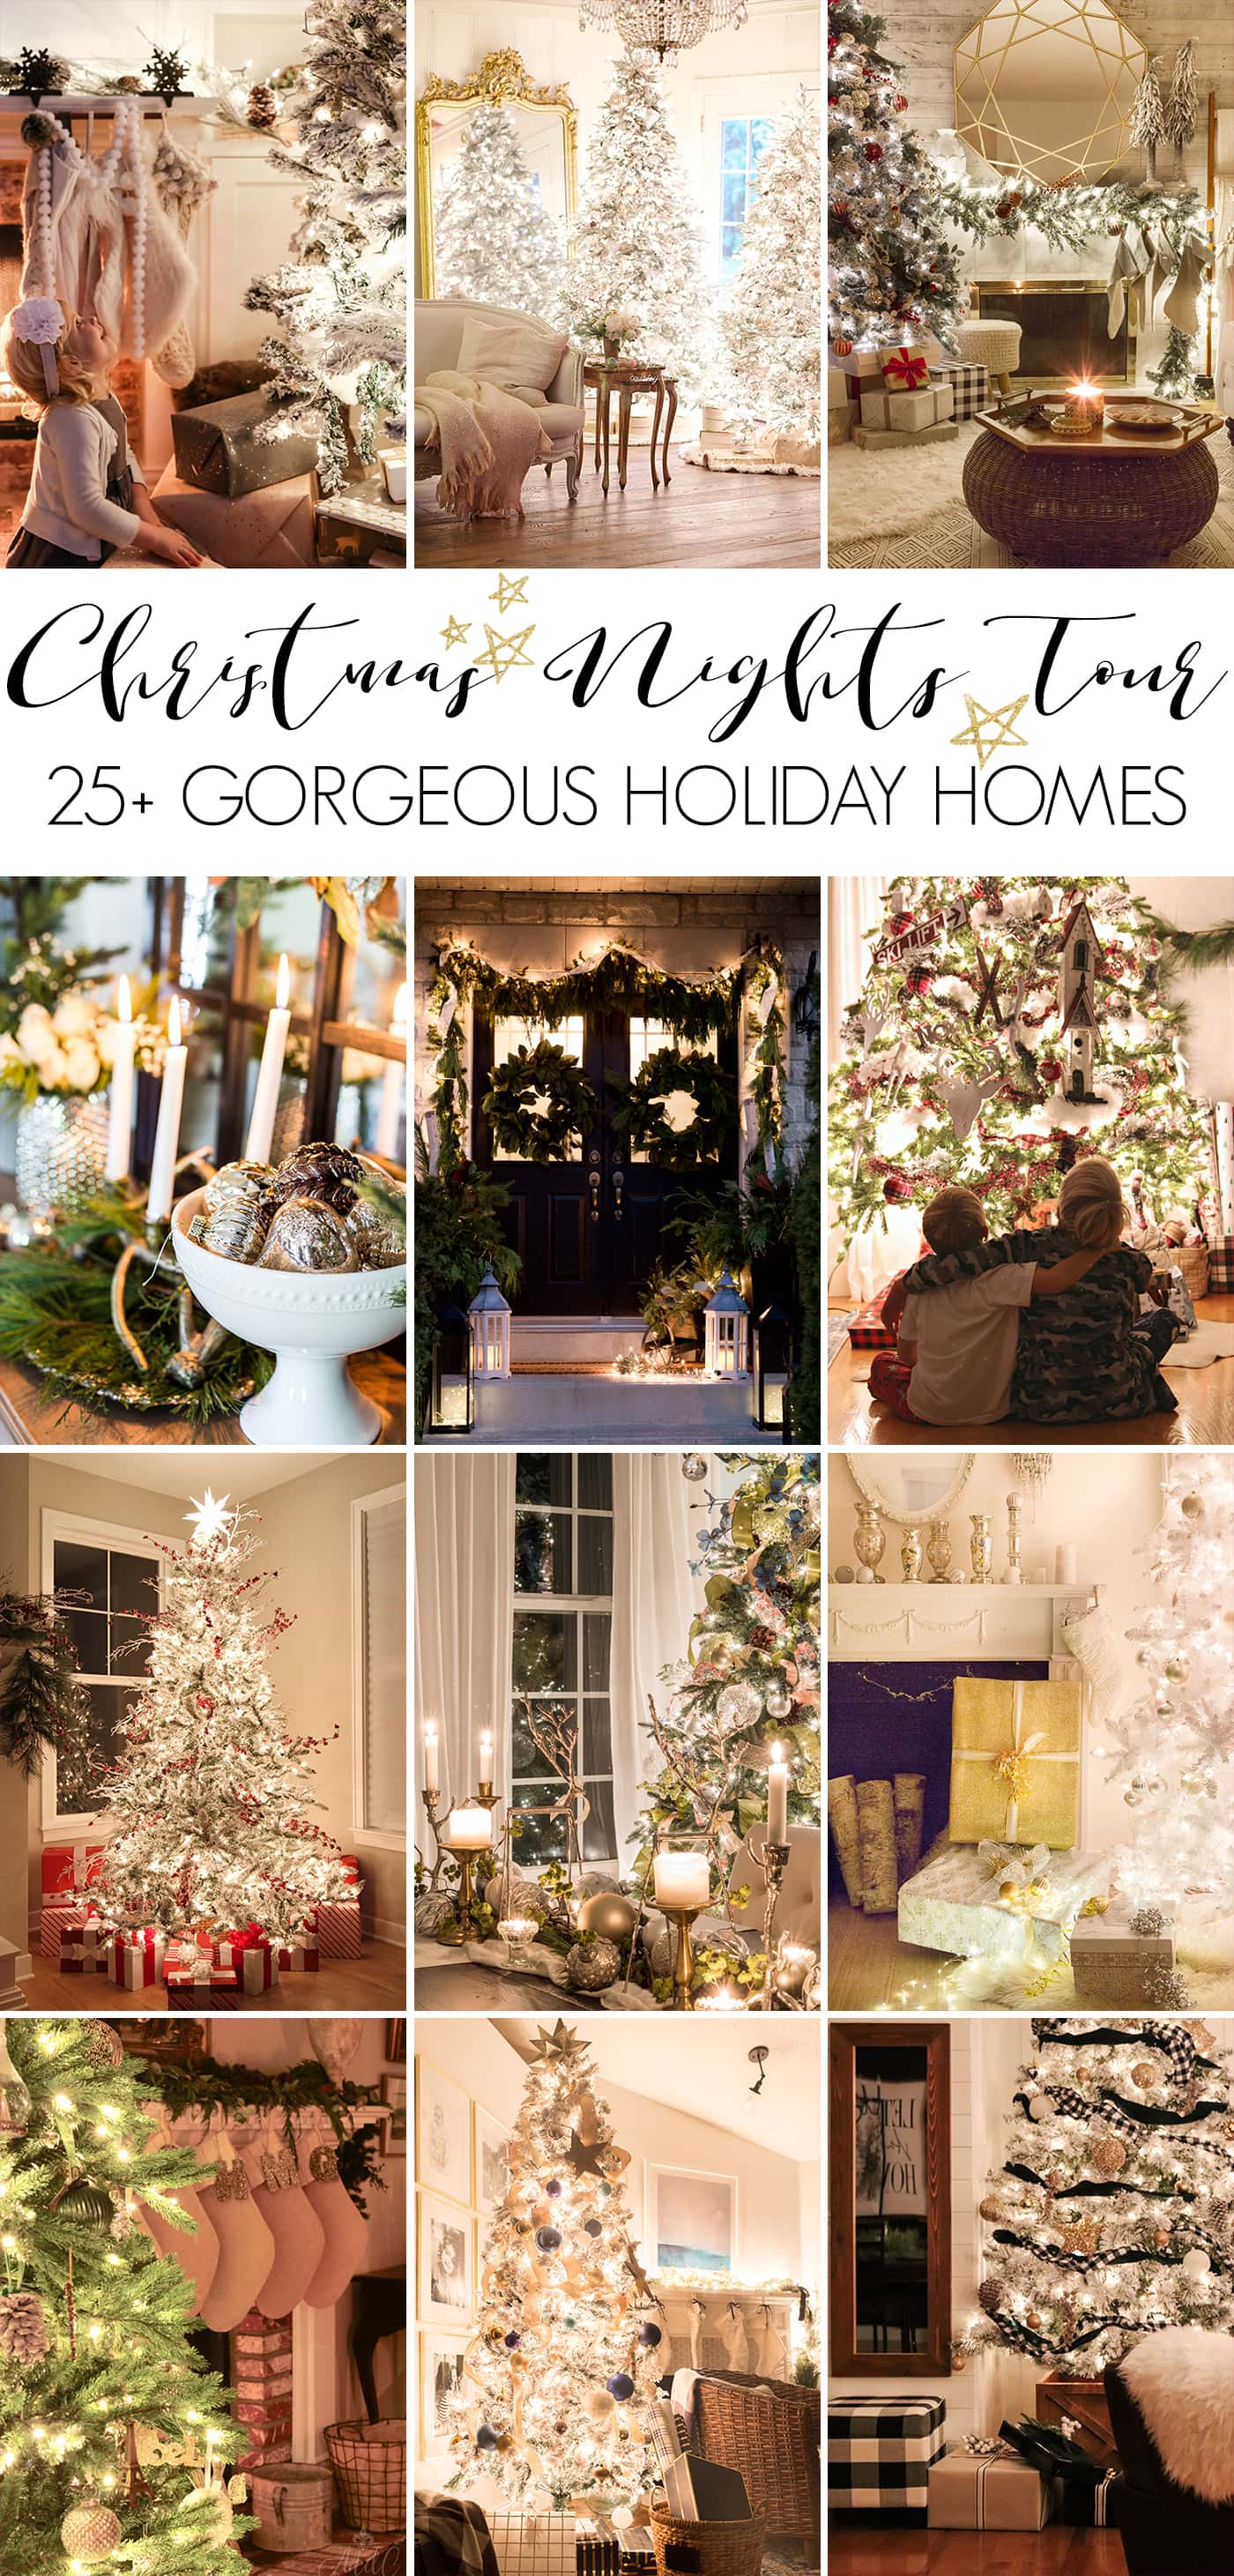 Home- Christmas Nights Tour, Christmas lights, Christmas tree, Christmas decor, holiday decor, home tour, Christmas home tour, holiday home tour, Christmas ornaments, Tour Image